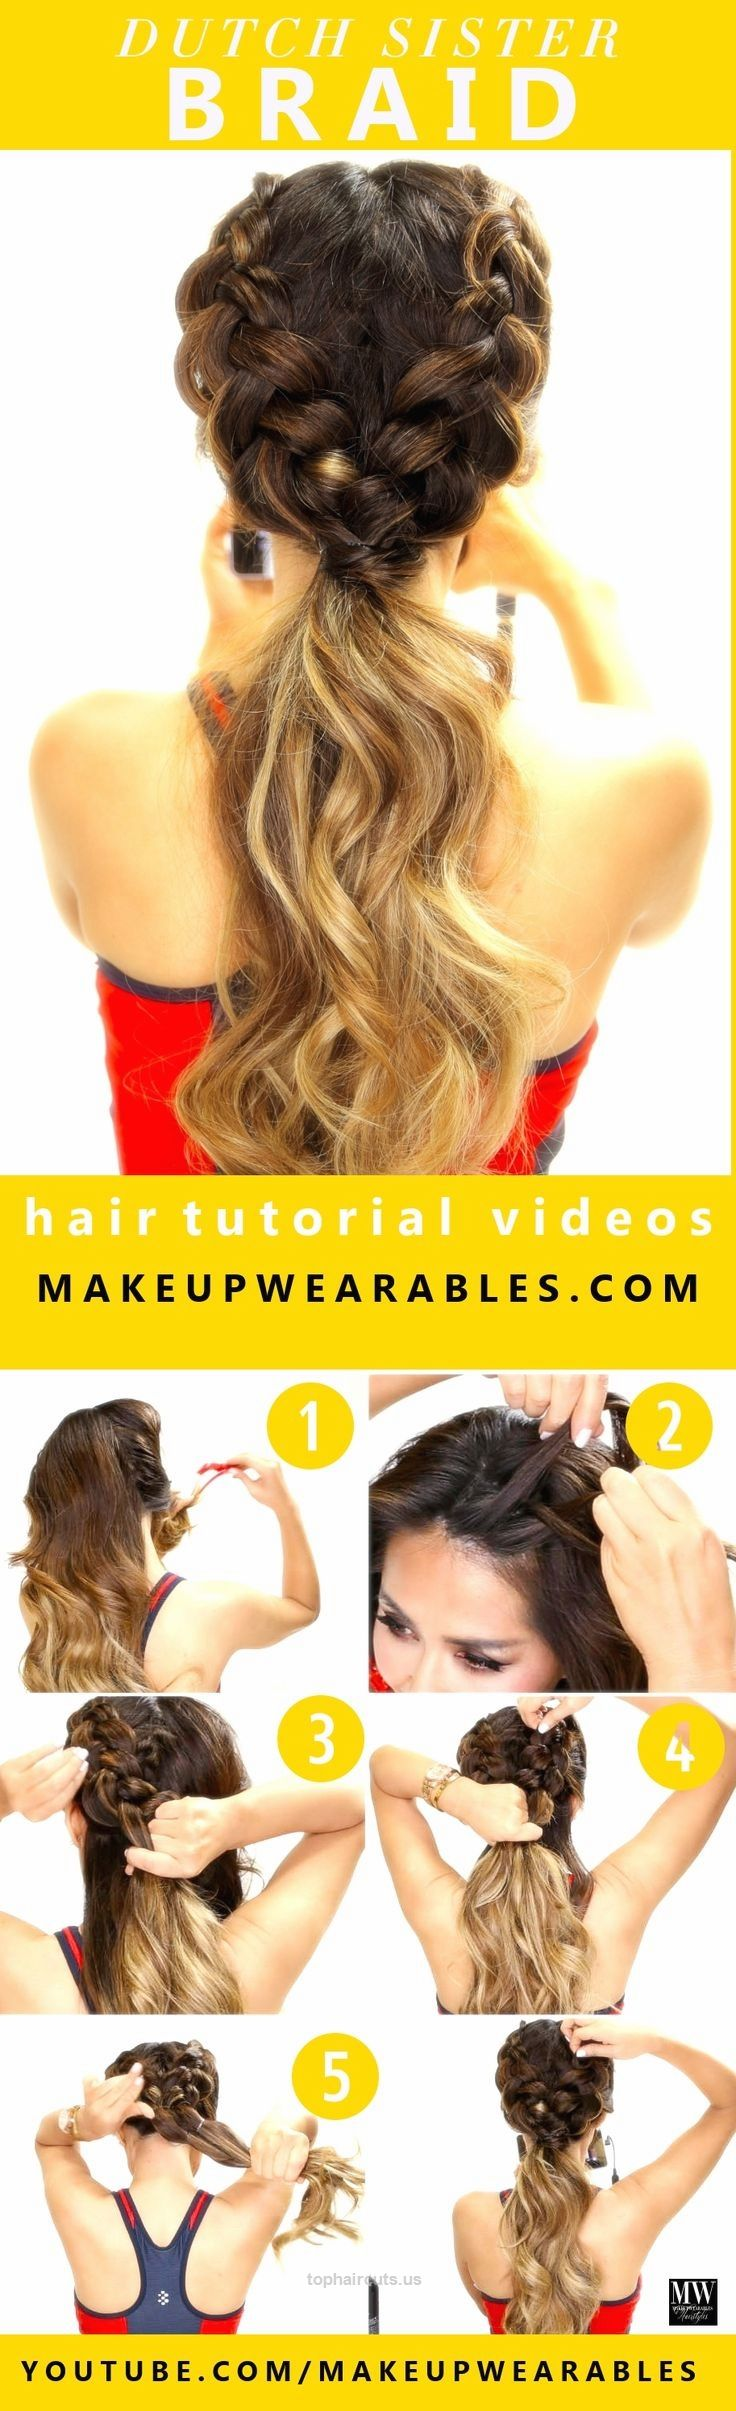 3 Cutest Braided Hairstyles | Mohawk Braid + Messy Bun 3 Cute Workout Gym Hairstyles with Braids | Hair Tutorial  http://www.tophaircuts.us/2017/05/09/3-cutest-braided-hairstyles-mohawk-braid-messy-bun/